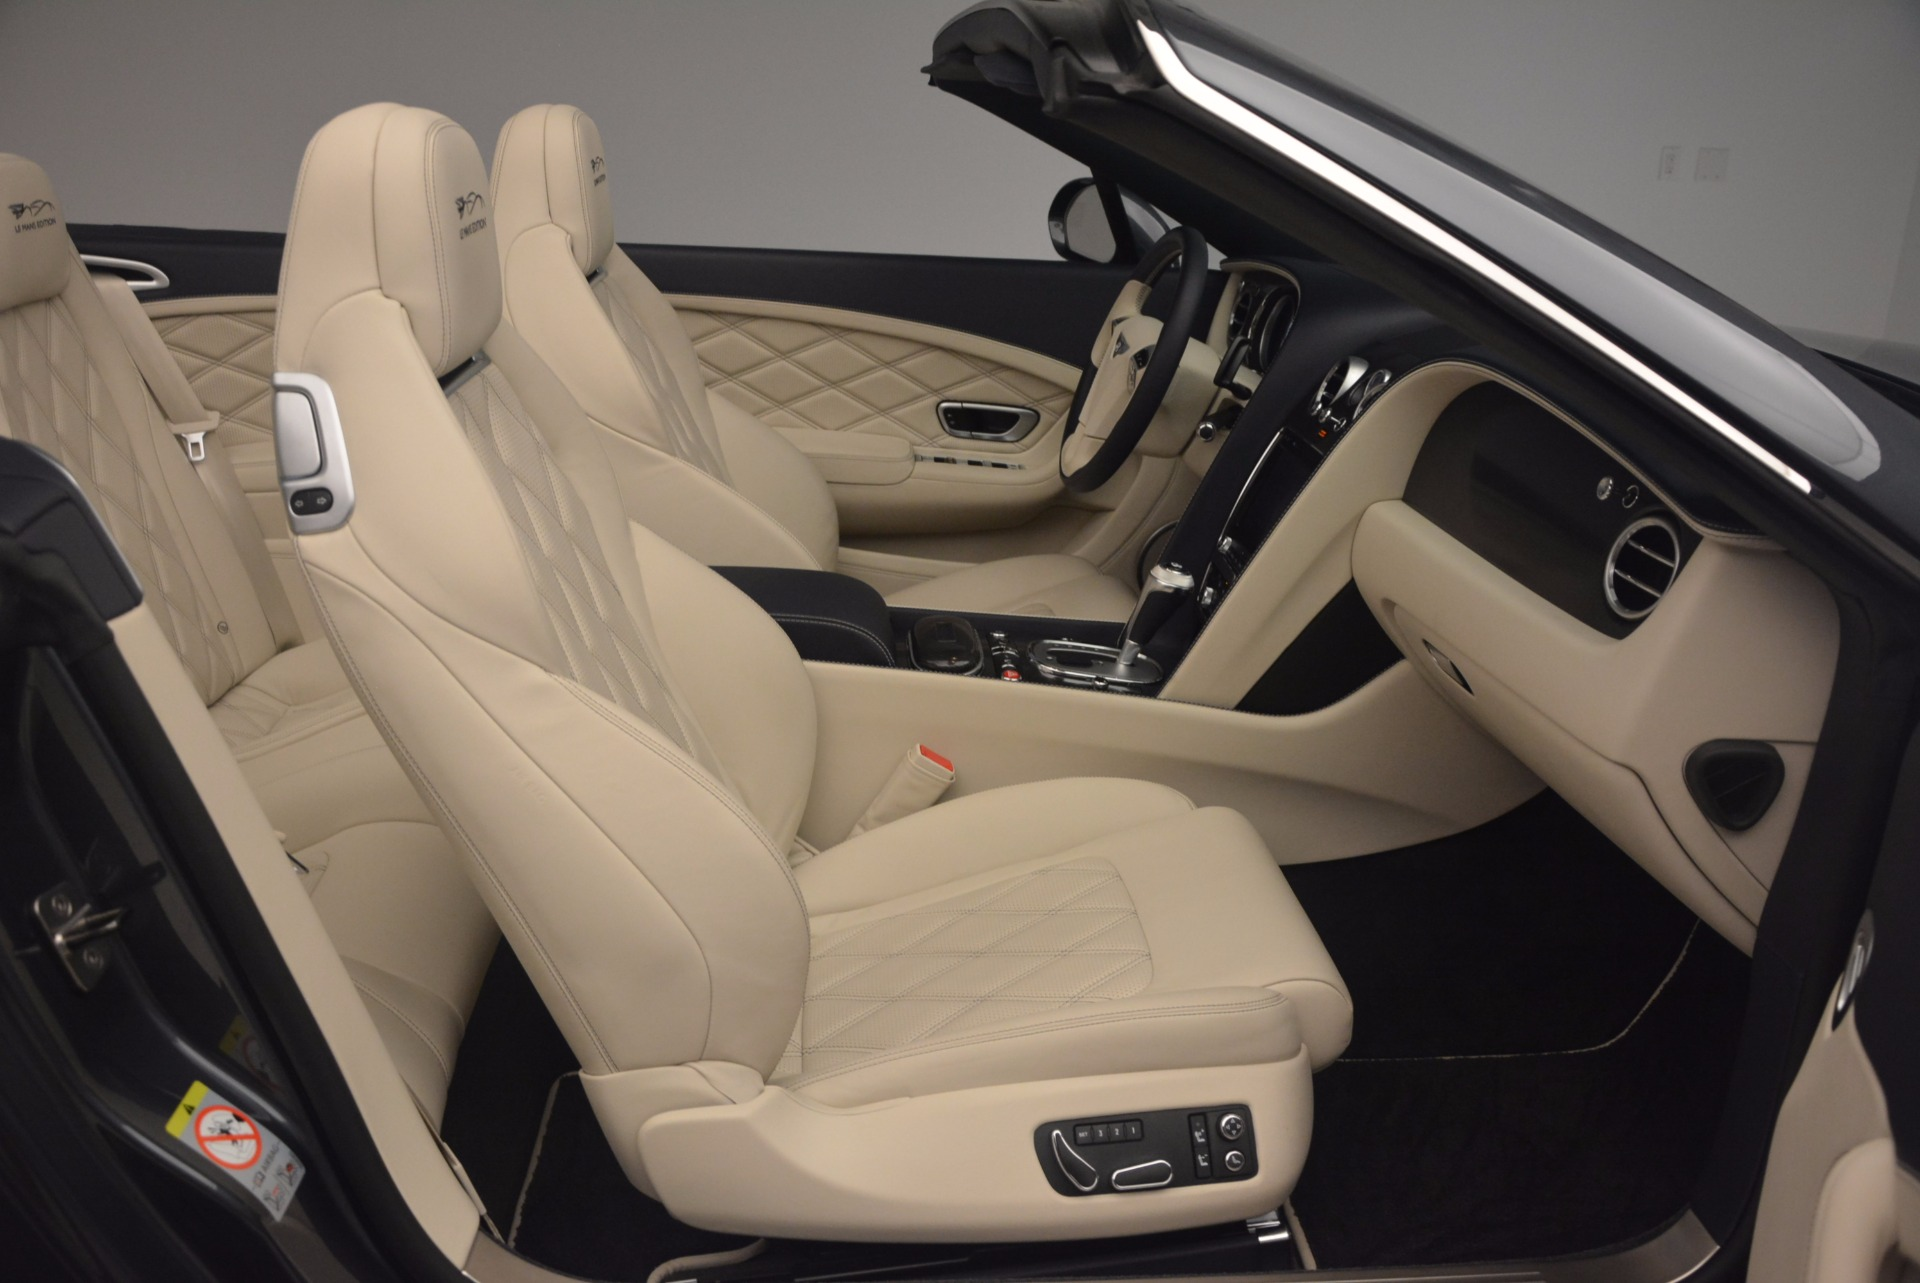 Used 2013 Bentley Continental GT V8 Le Mans Edition, 1 of 48 For Sale In Westport, CT 1288_p49